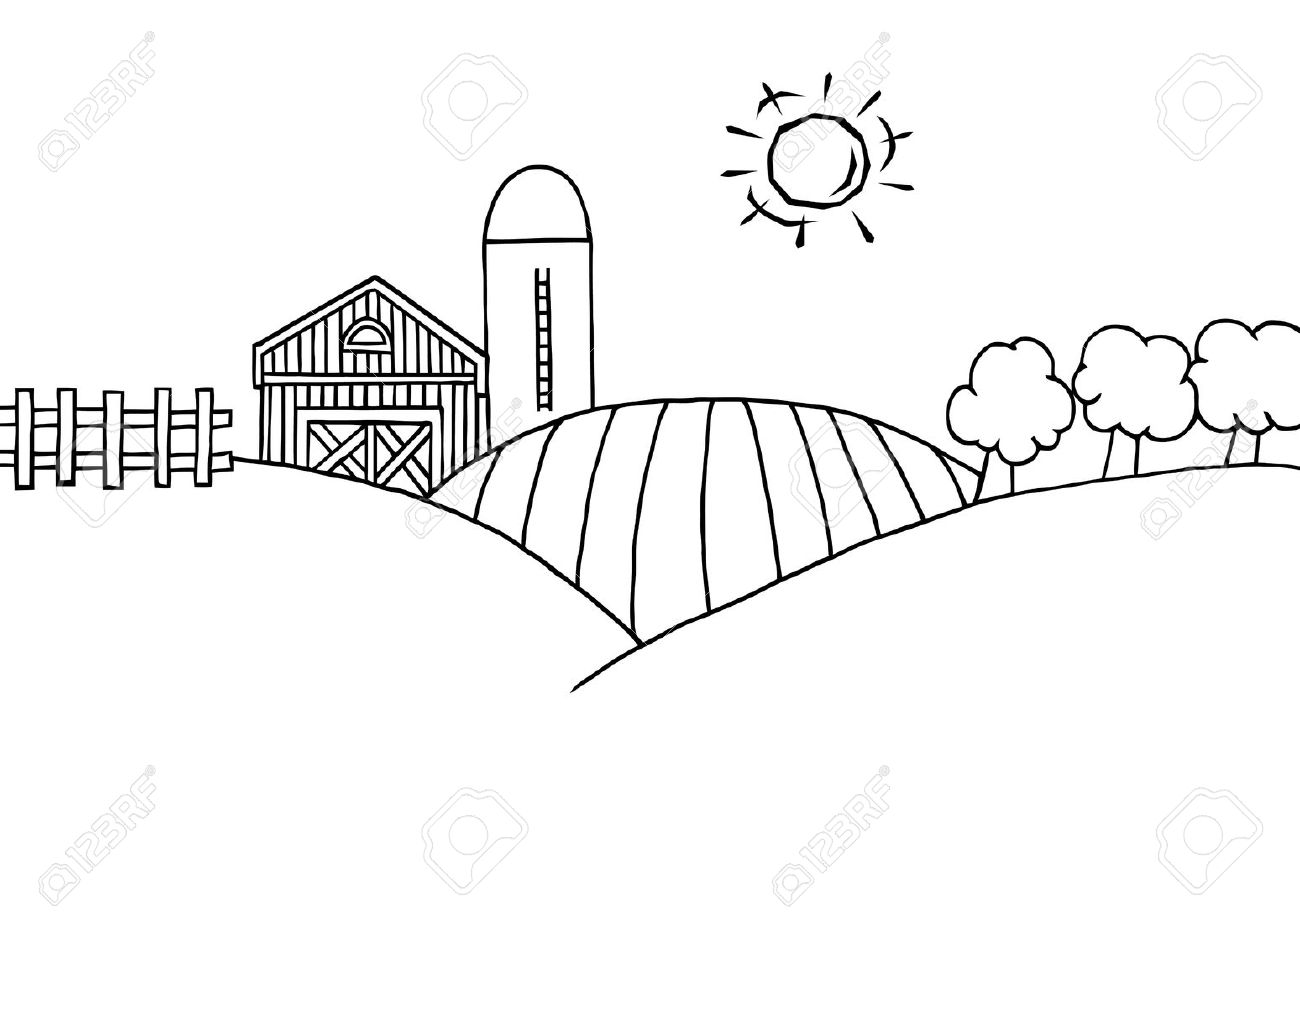 Farm And Silo On Farm Land .-Farm And Silo On Farm Land .-3